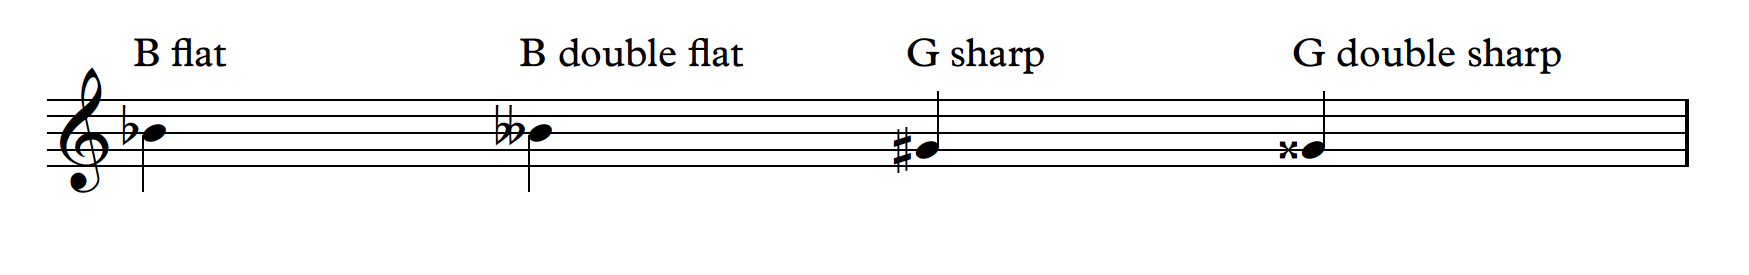 double sharps.png